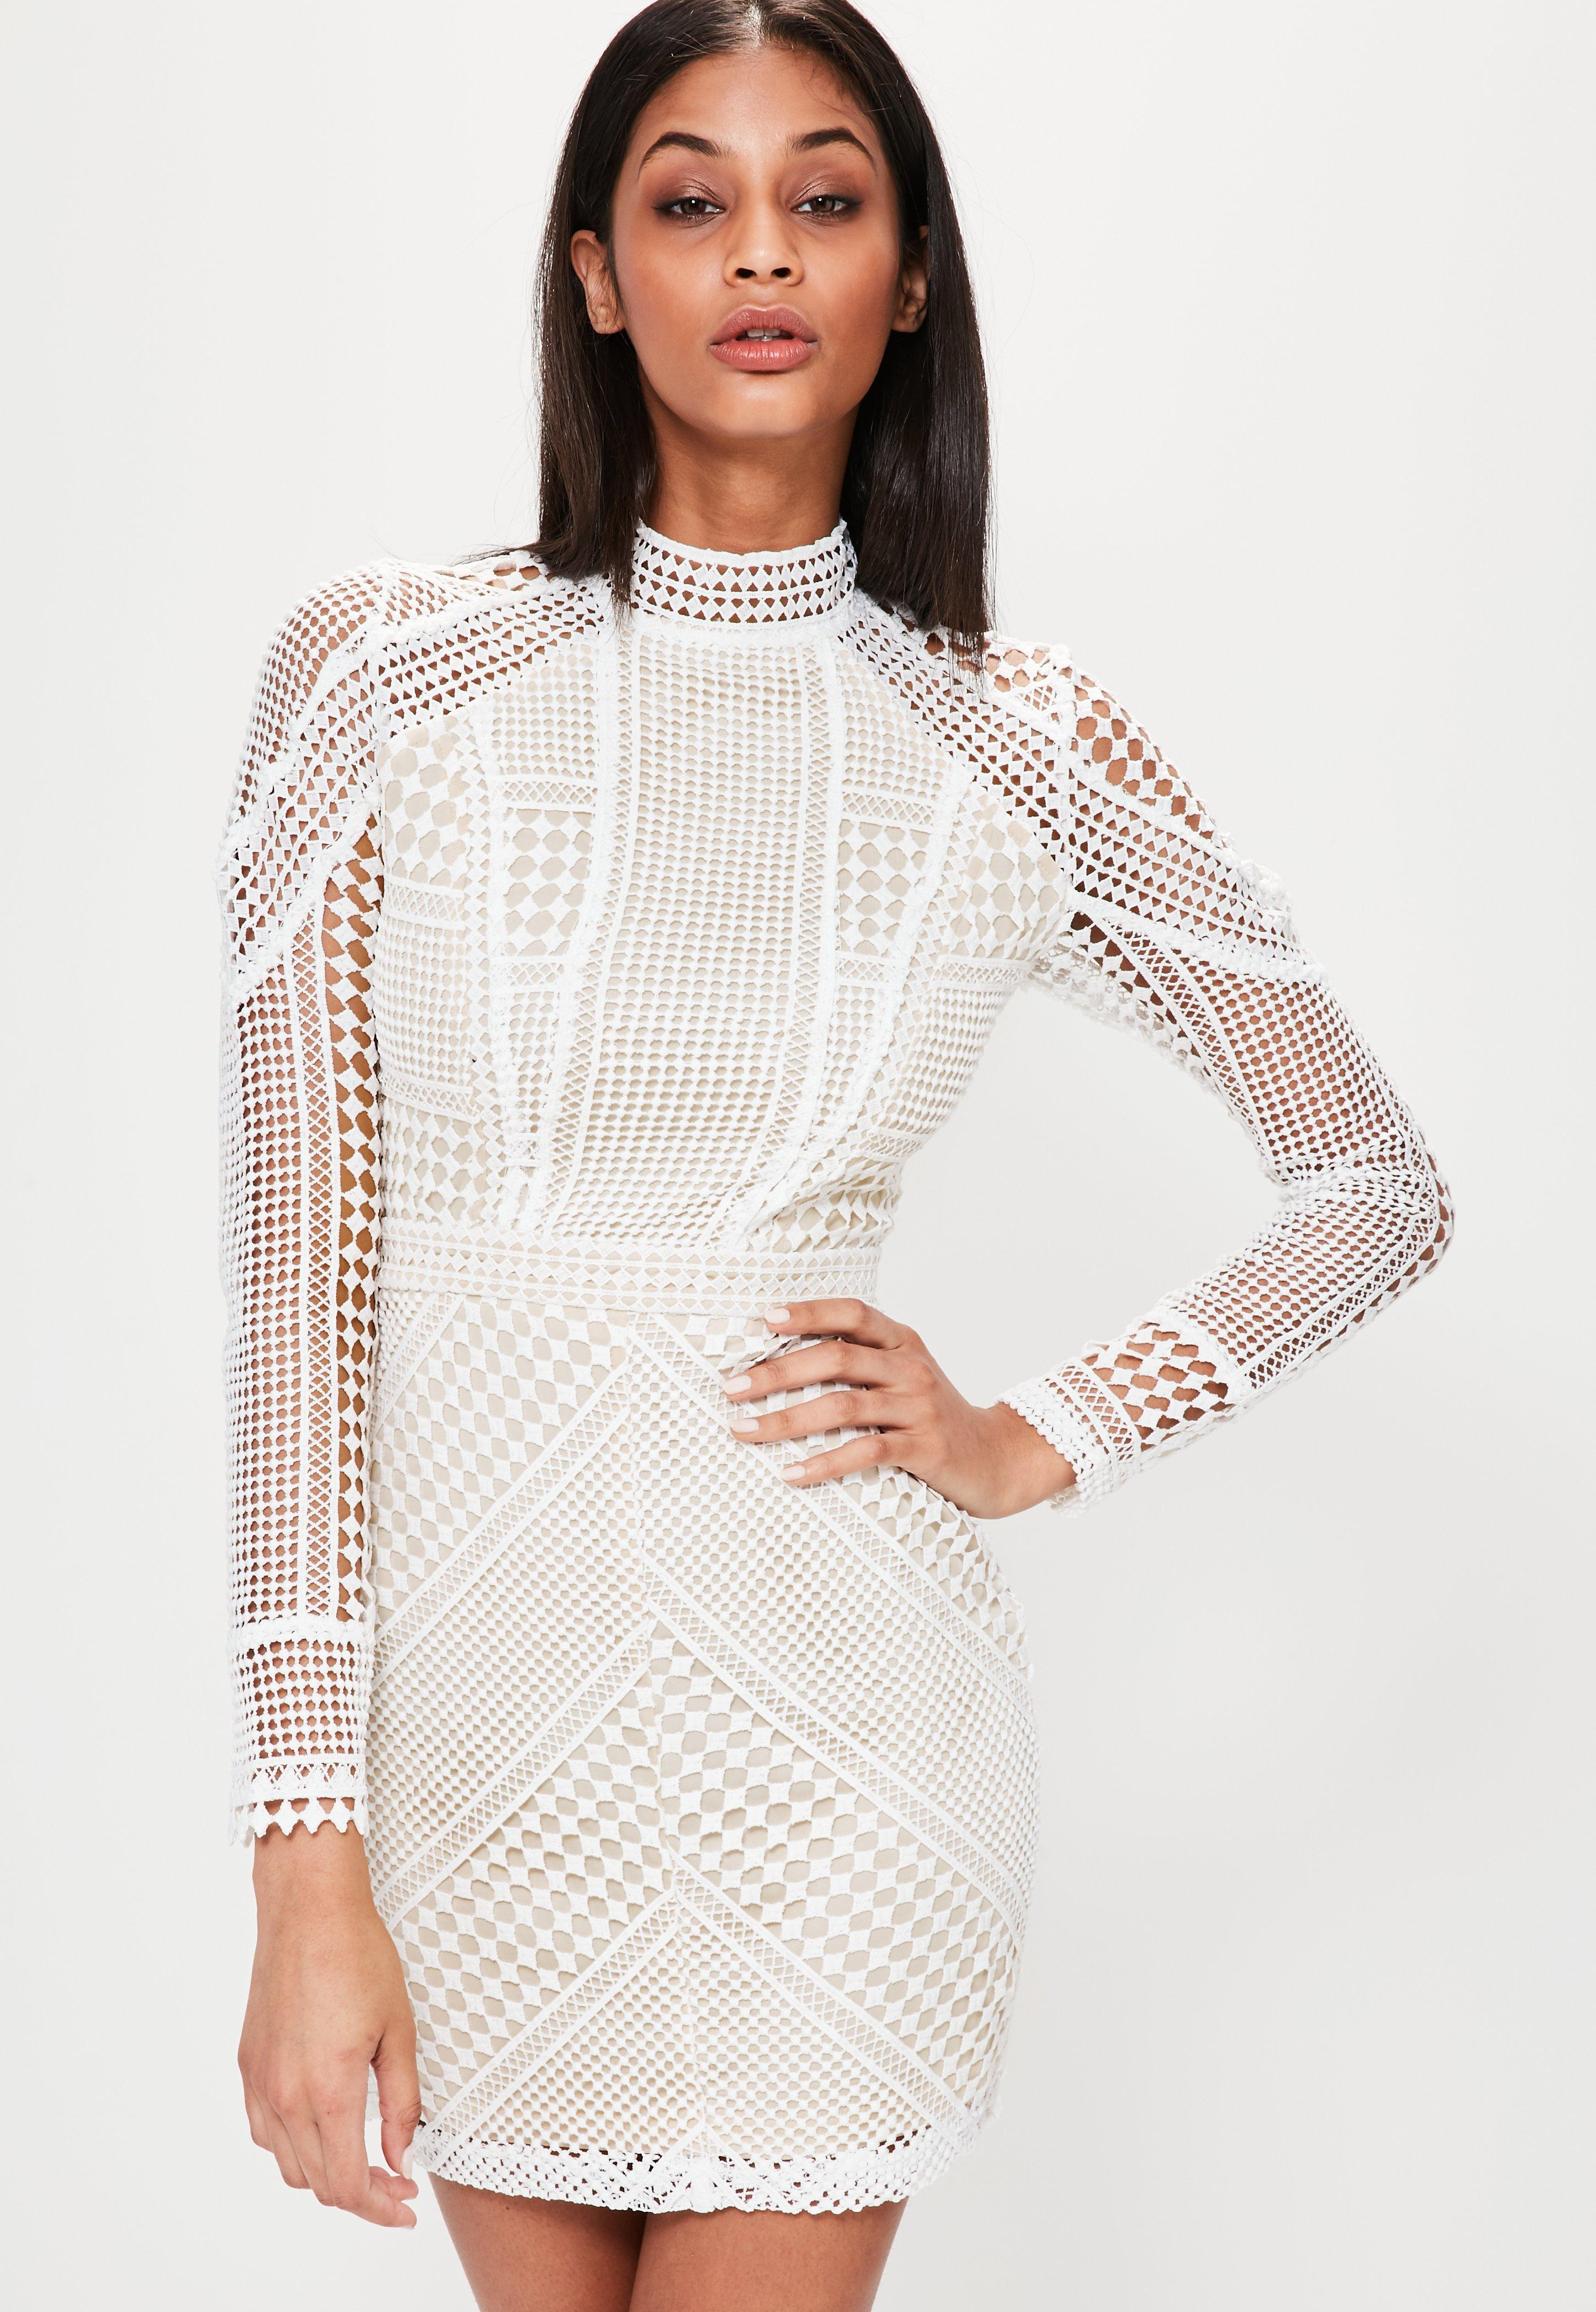 bed23a6ae2b5 Missguided Premium Structured High Neck Lace Mini Dress White in ...